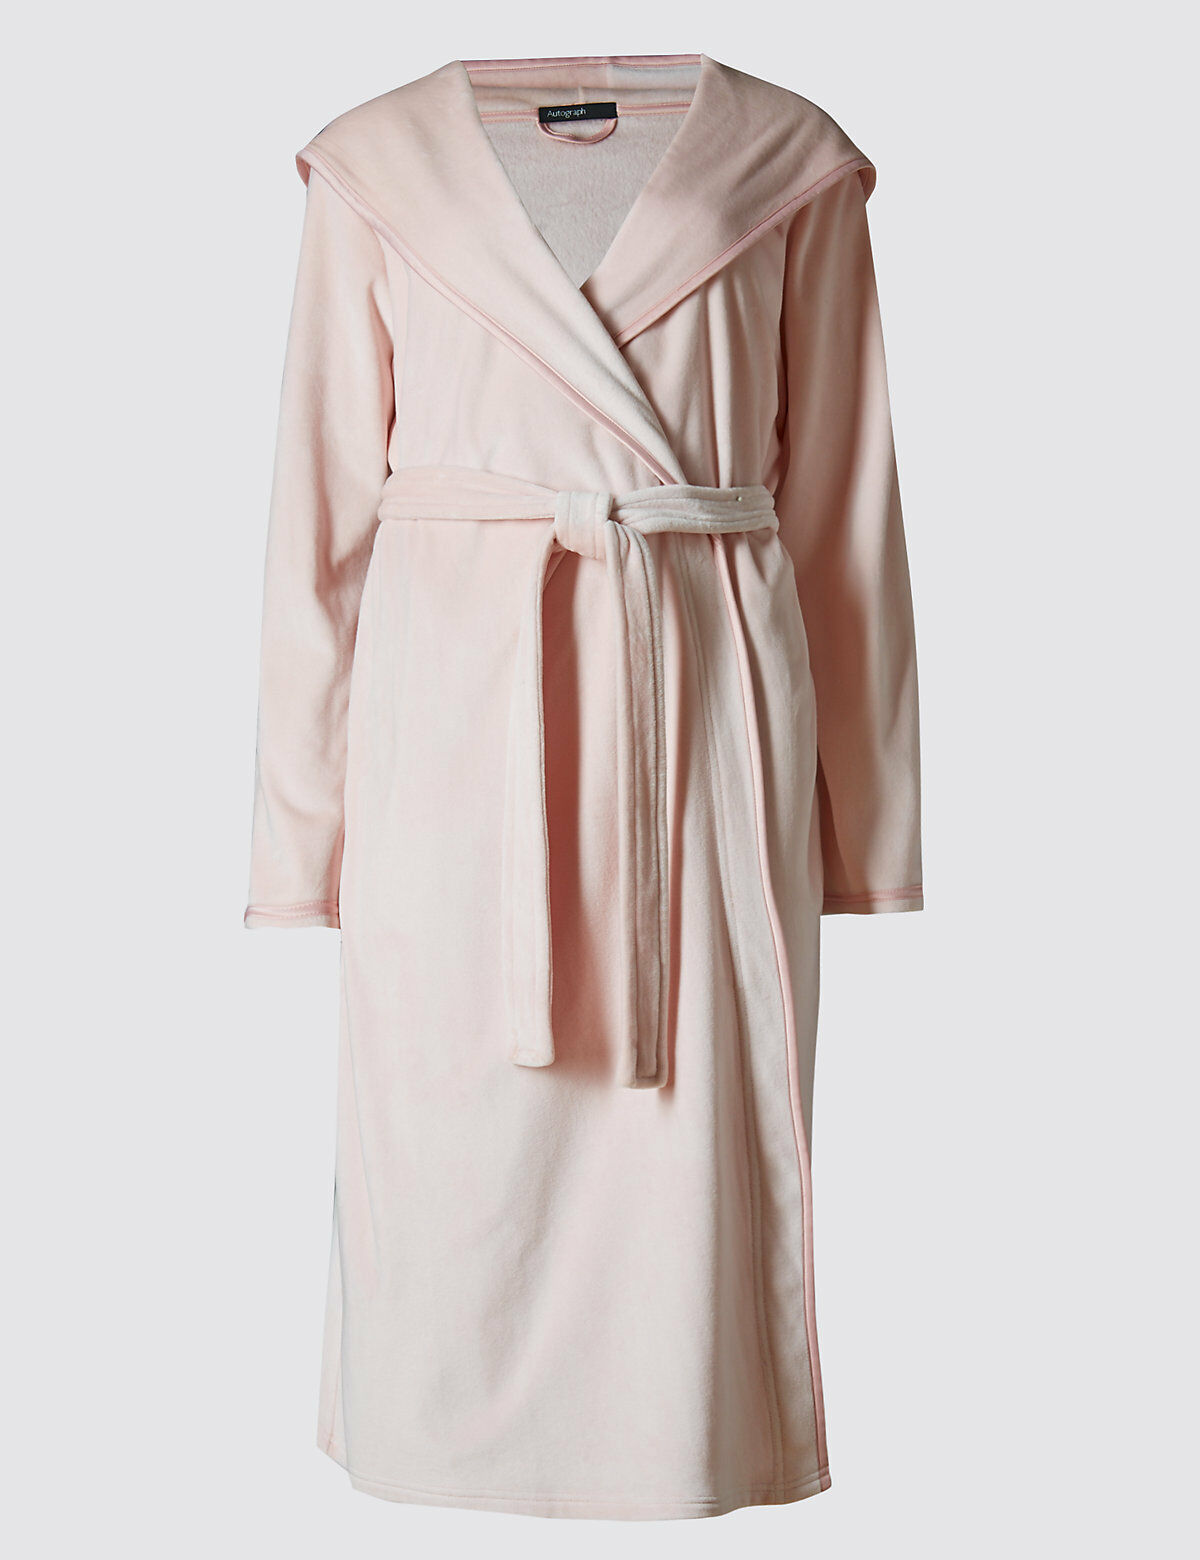 Dorable Marks Spencer Dressing Gown Photo - Images for wedding gown ...